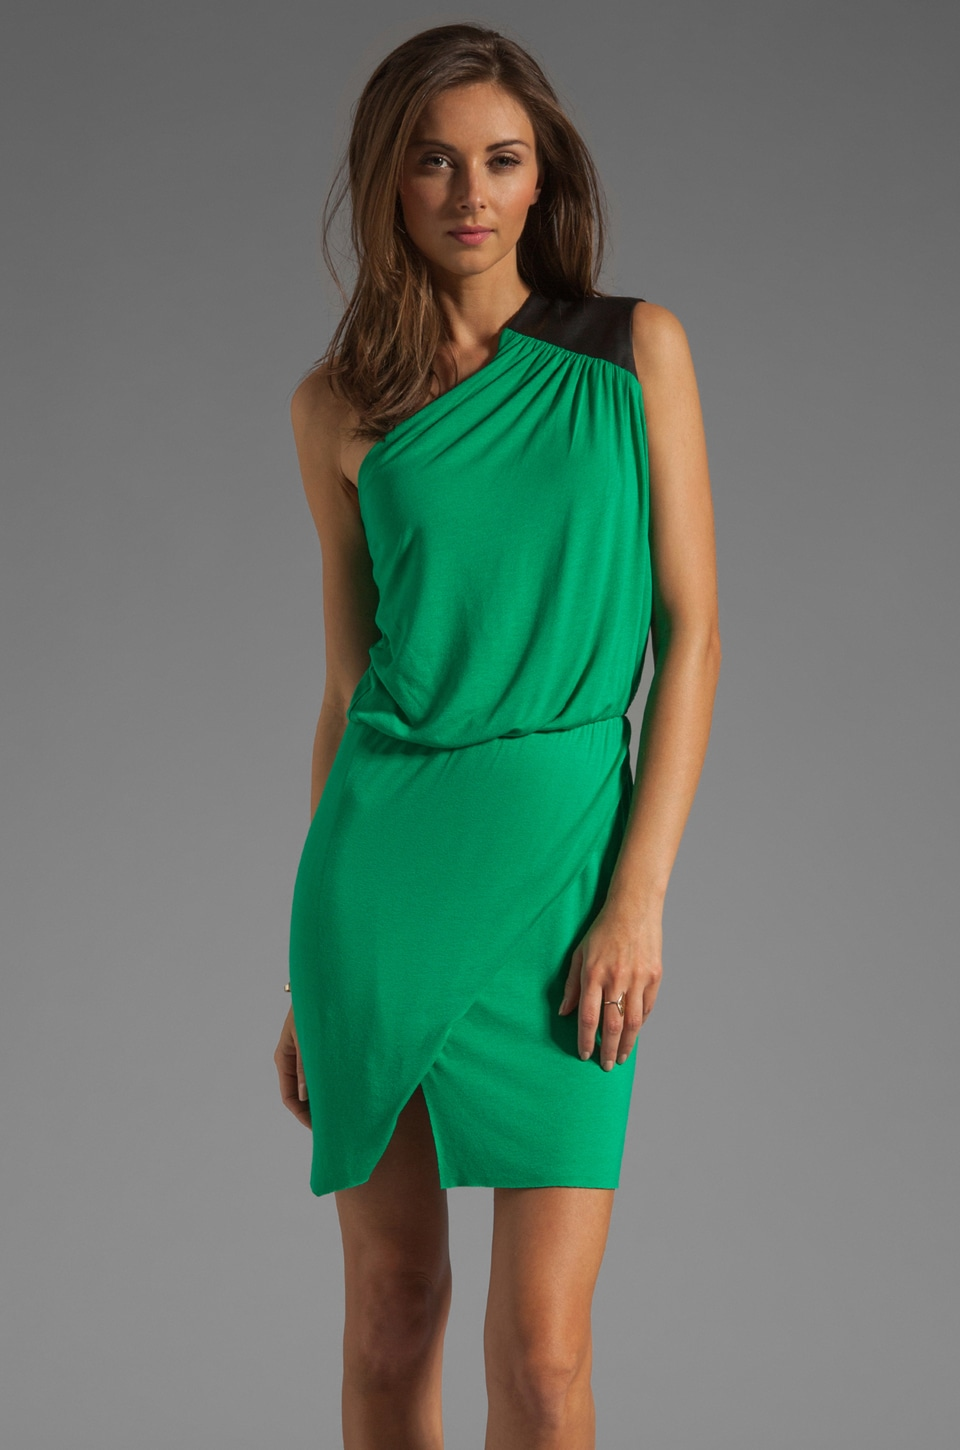 Mason by Michelle Mason Leather Trim Asymmetric Mini Dress in Green